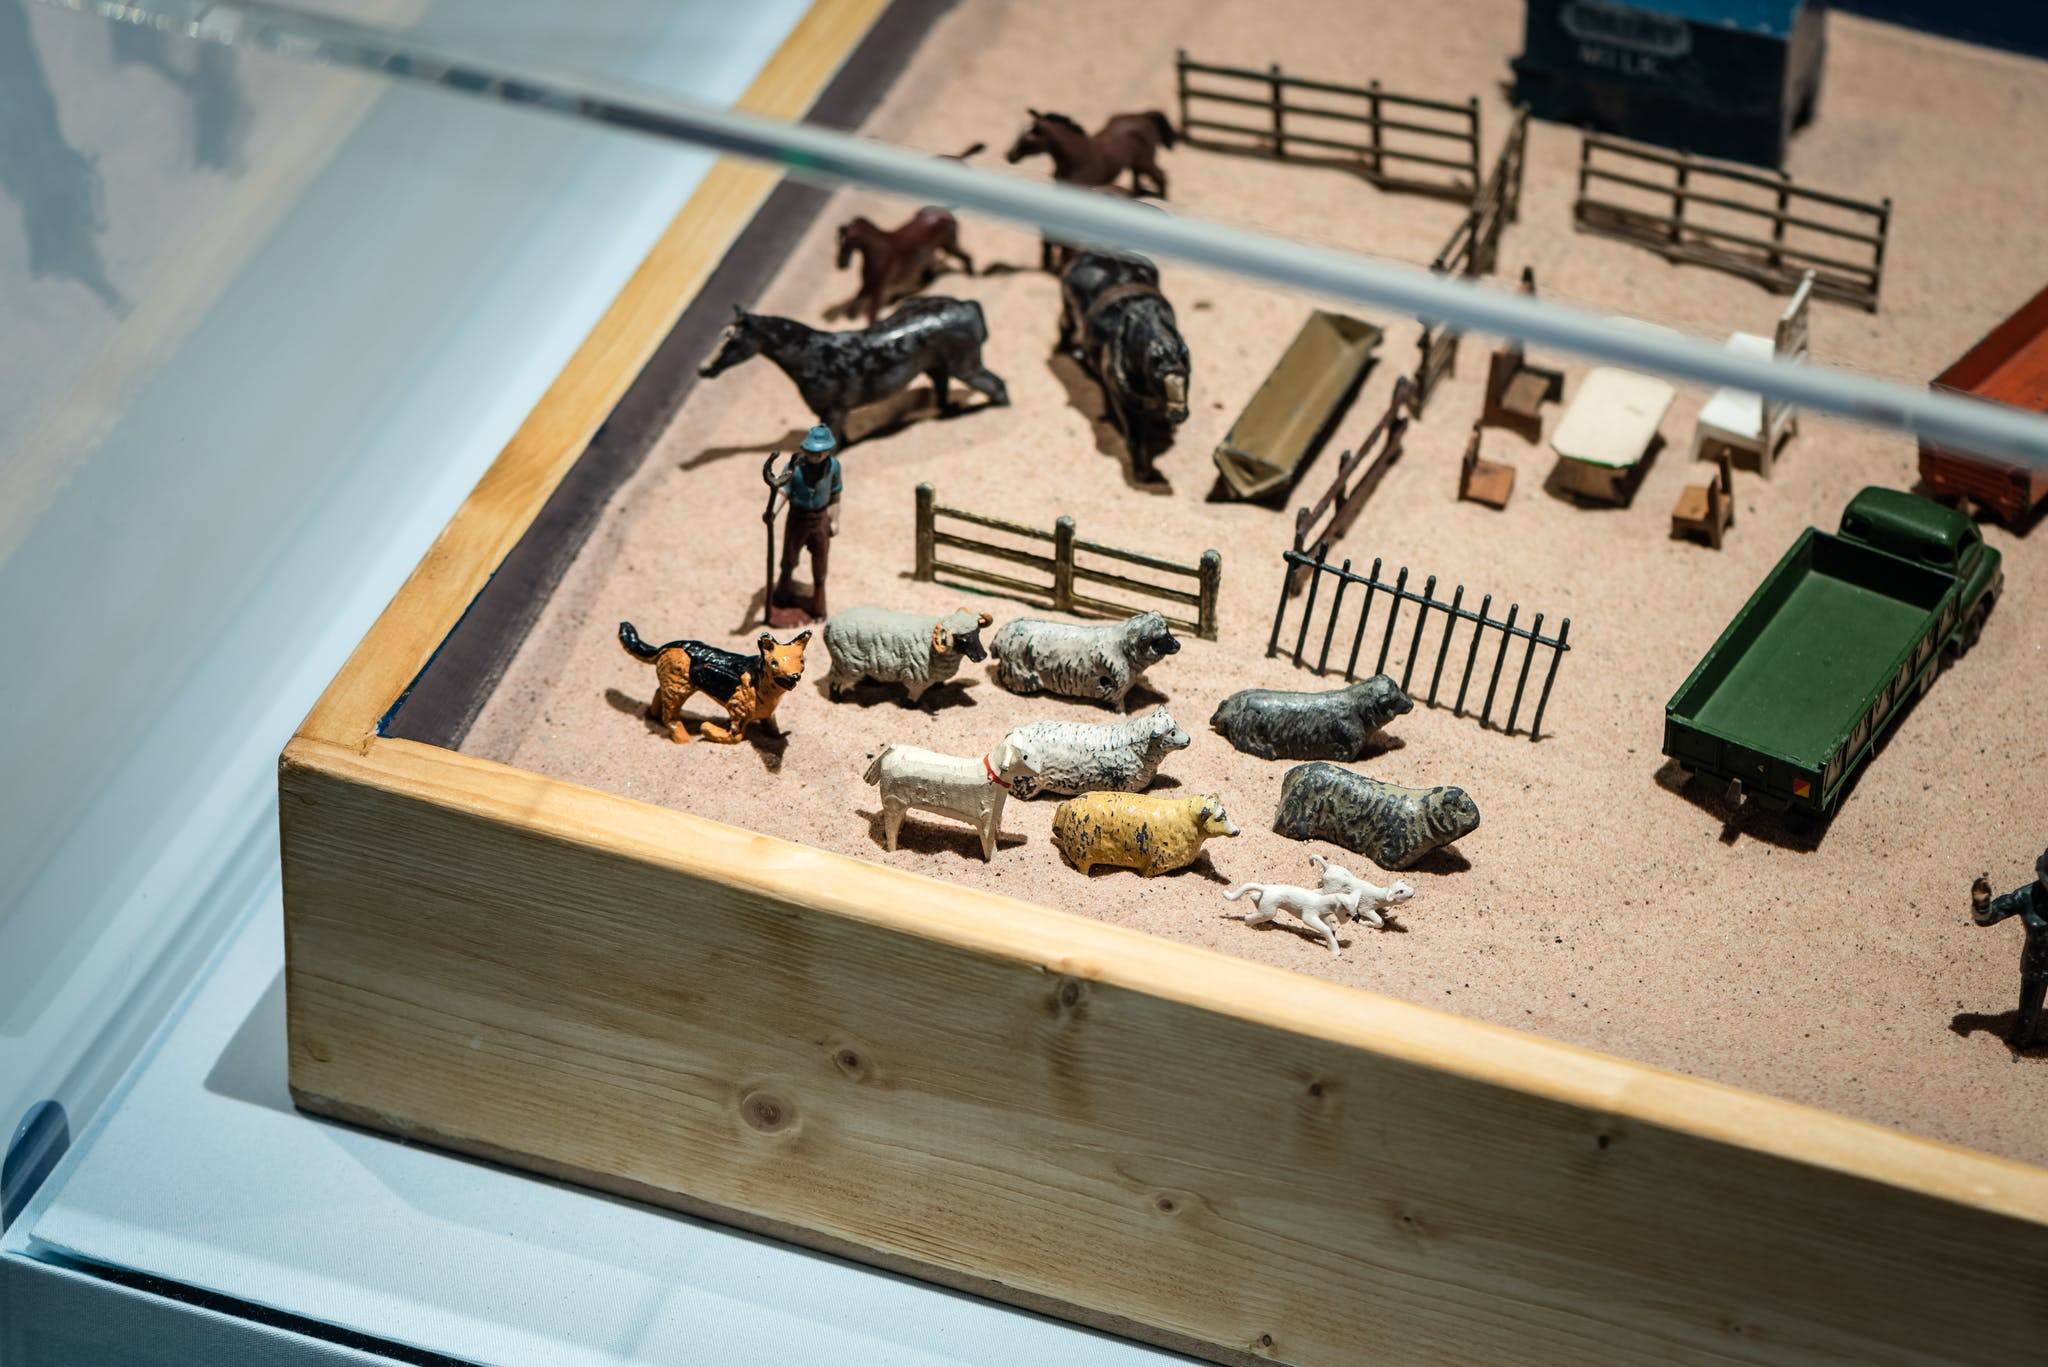 Miniature plastic replica of a farm including animals, fences and trucks